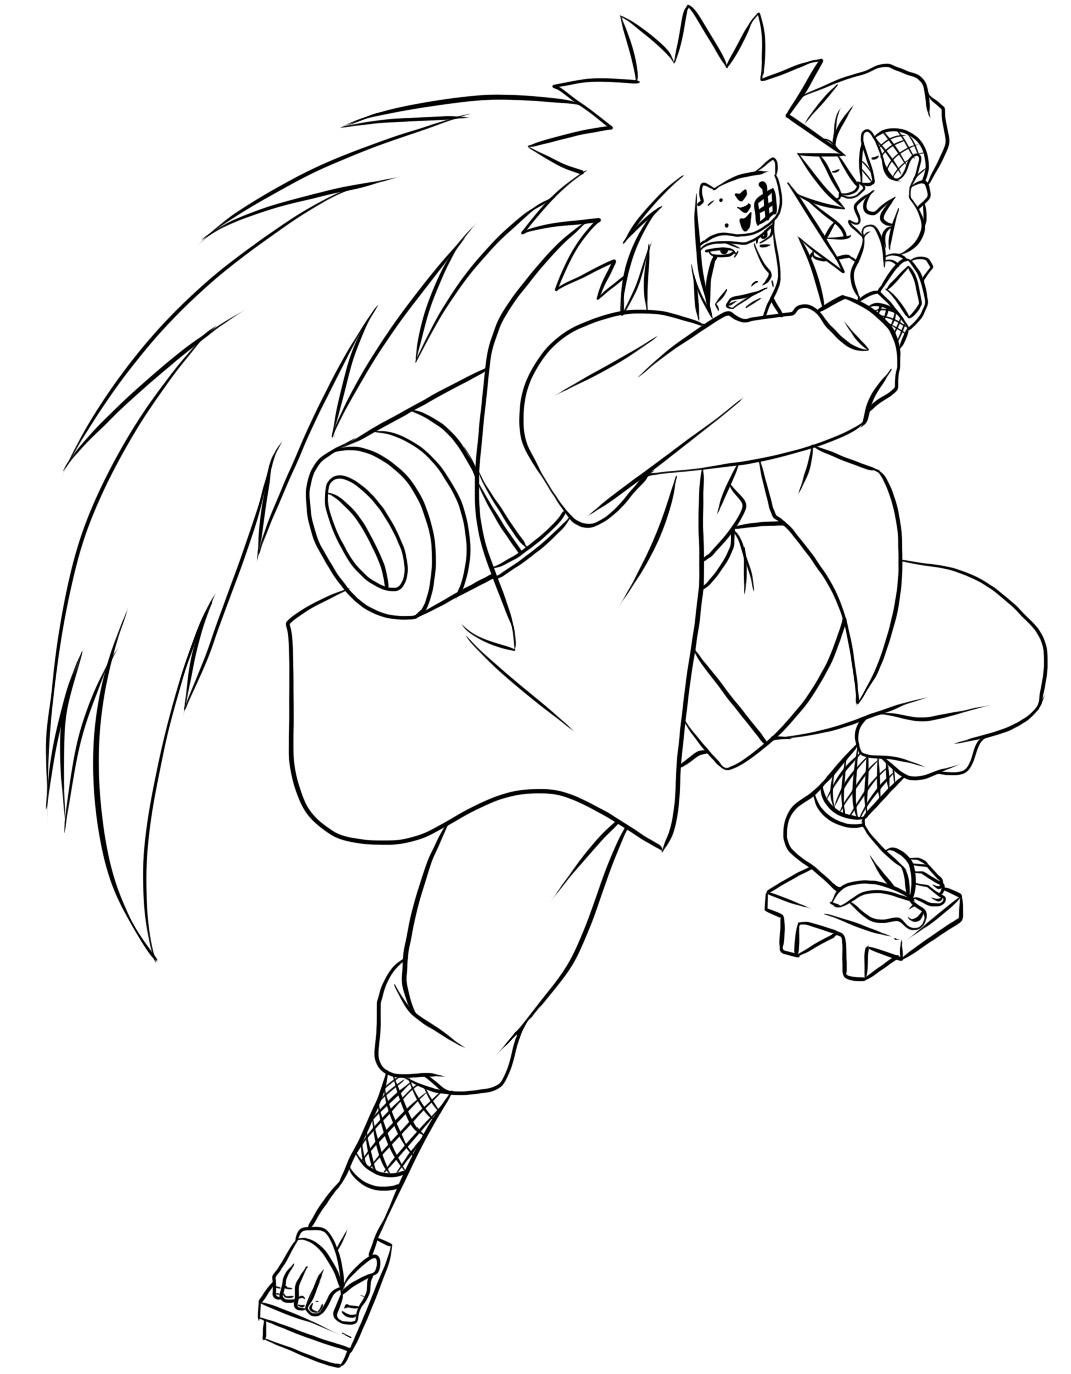 1071x1374 Coloring Pages Naruto Coloring Pages Free Printable For Kids